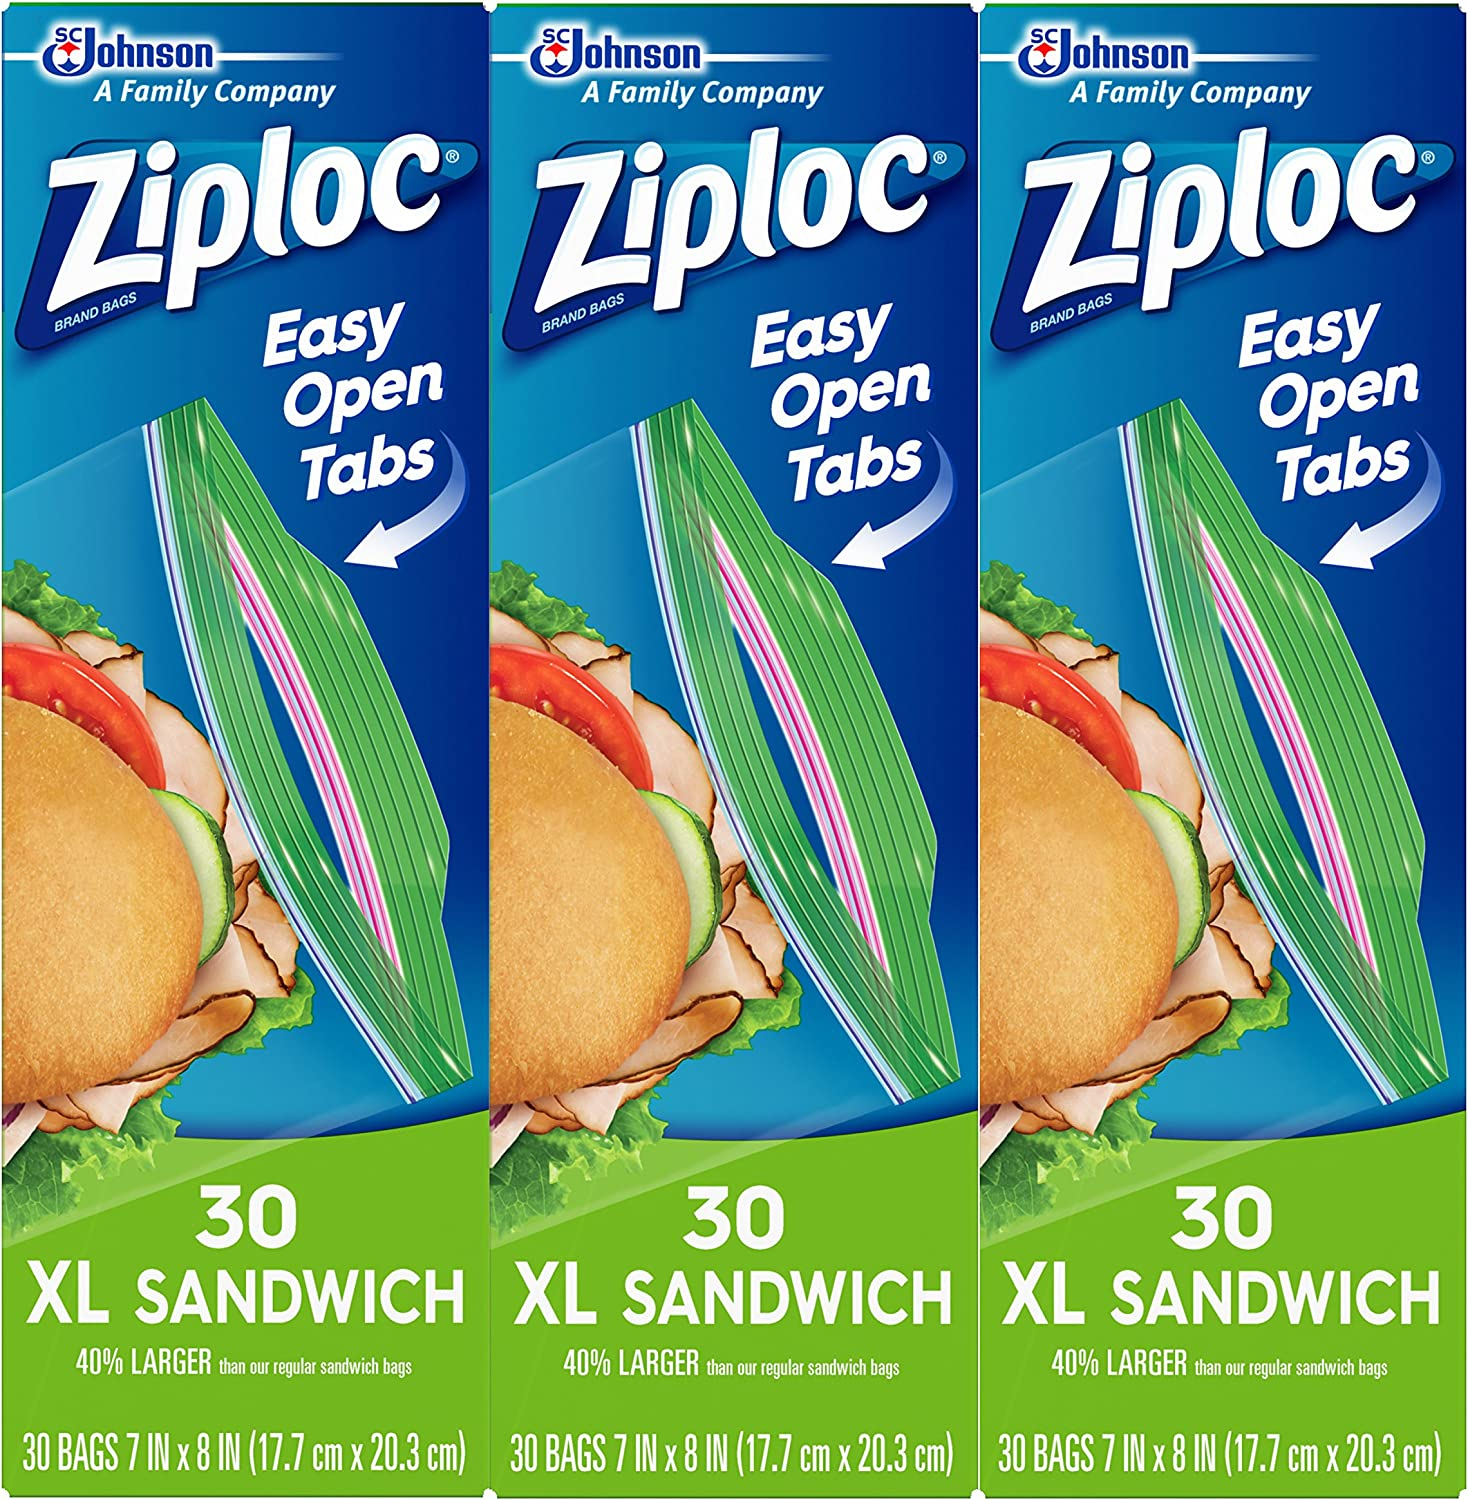 Ziploc Sandwich Bags, Easy Open Tabs, XL, 30 Count, Pack of 3 (90 Total Bags)